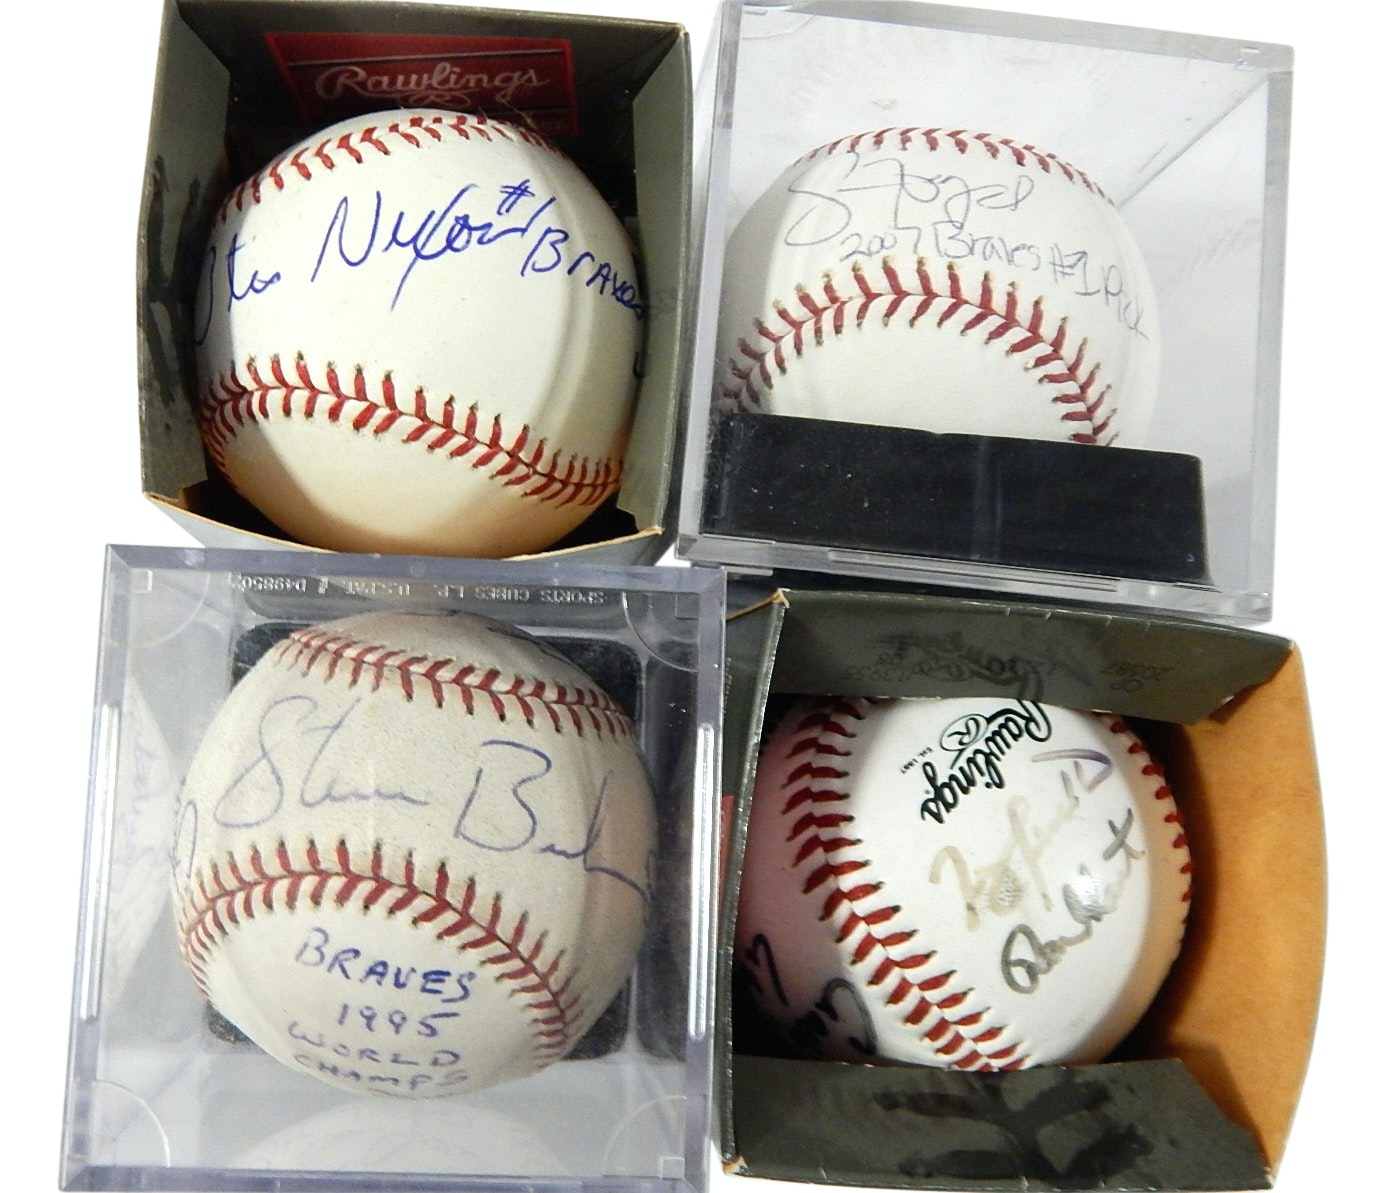 Atlanta Braves Signed Bud Selig Baseballs with Signed 1995 World Champions